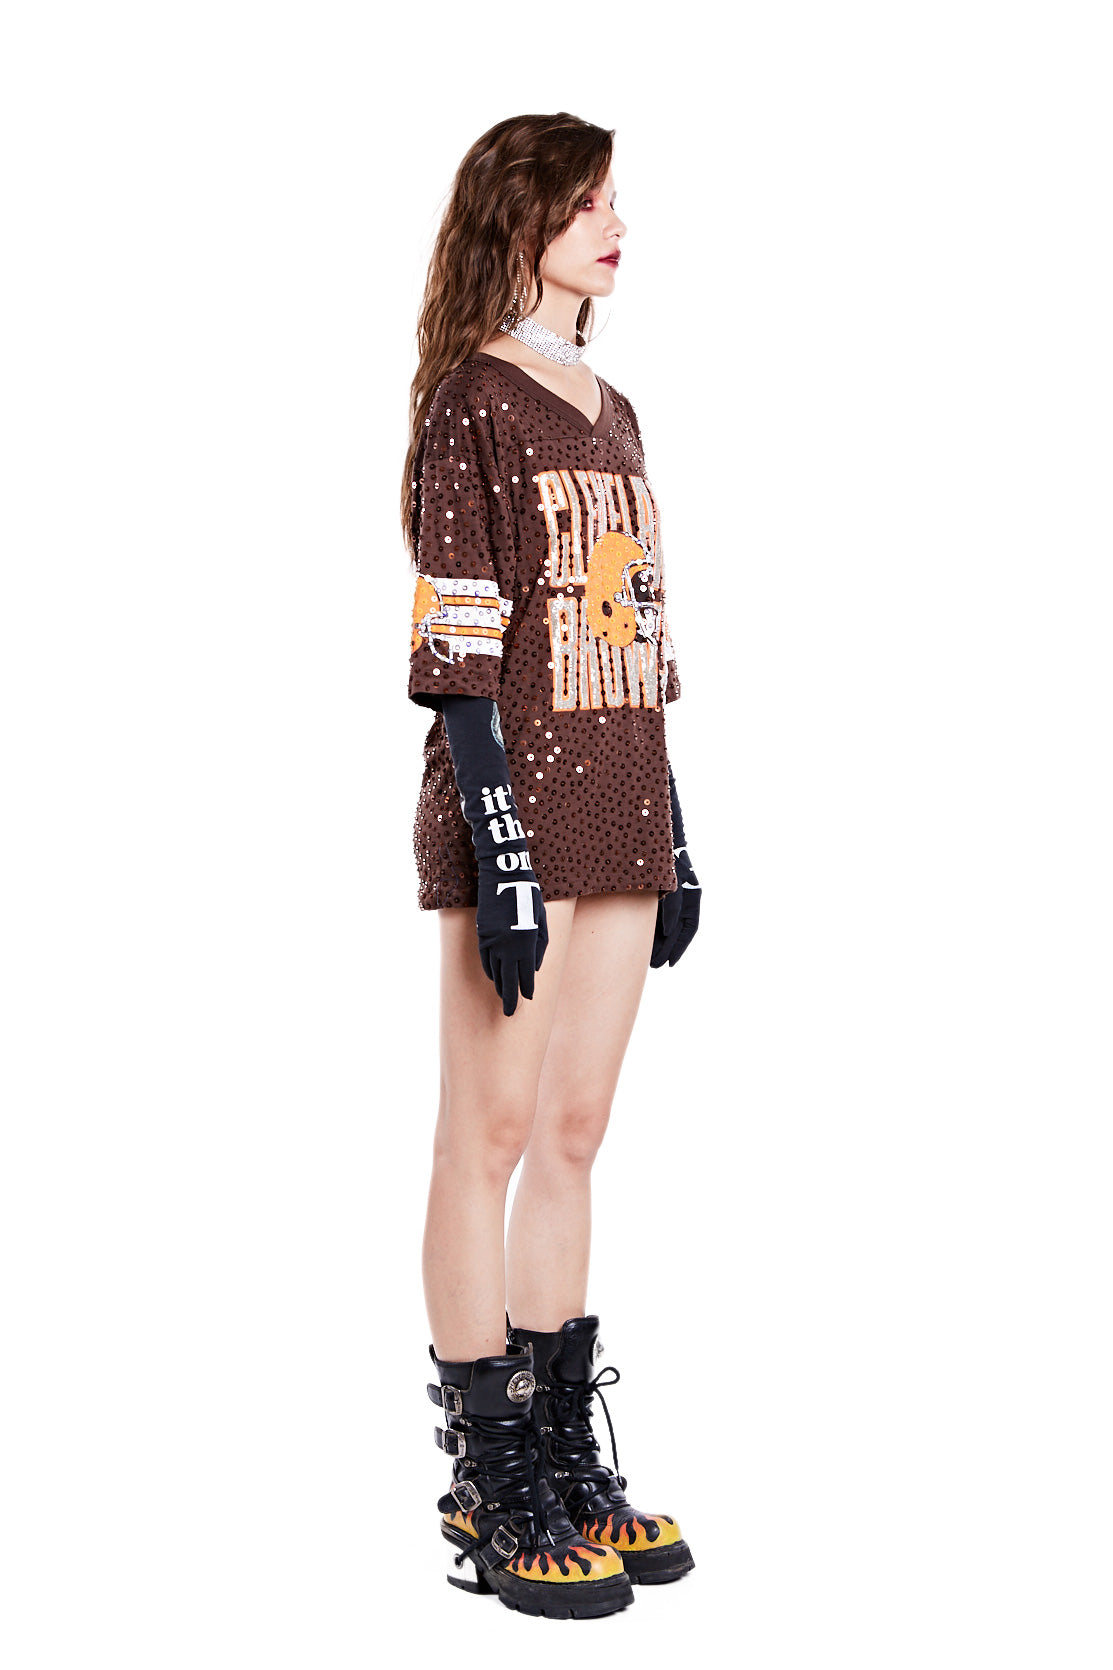 American Football Jersey Top - Cleveland Browns - I LOVE DIY by Panida